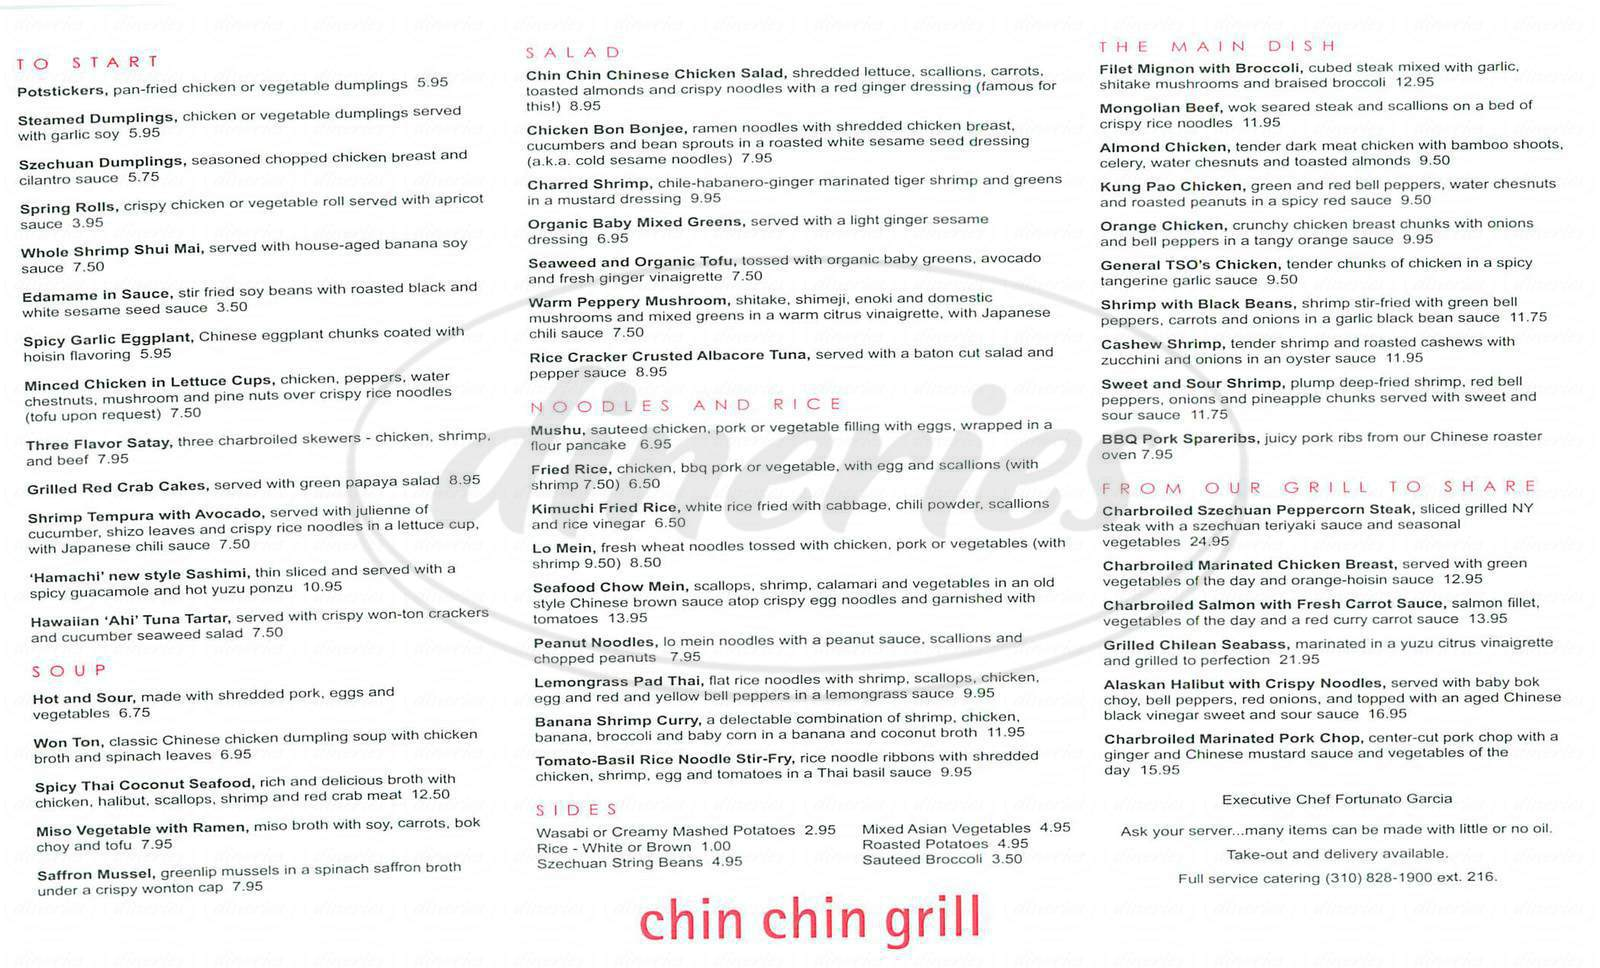 menu for Chin Chin Grill